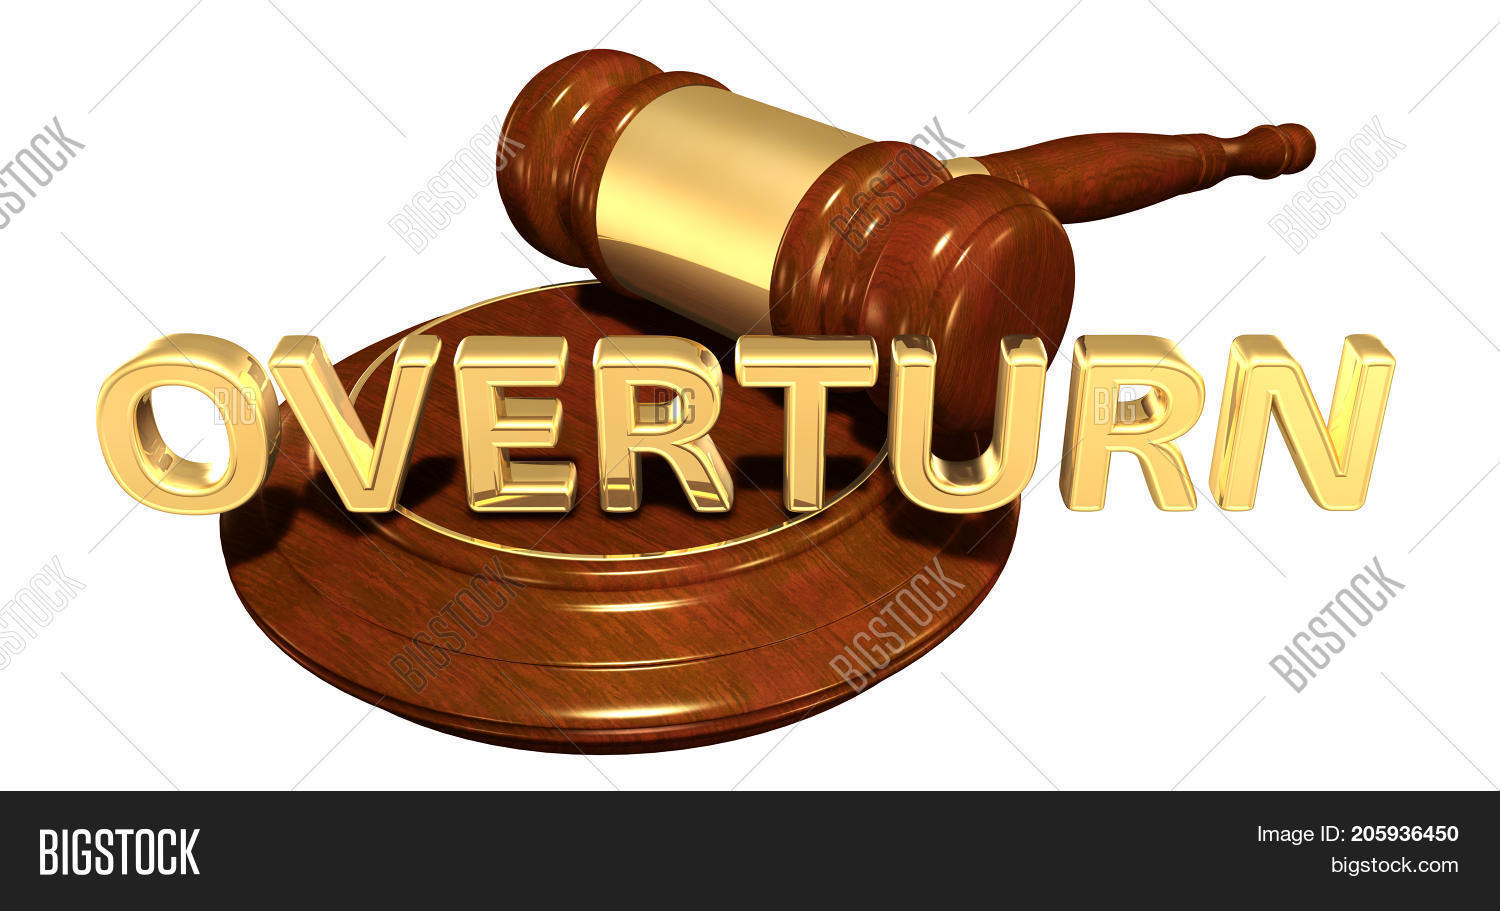 Overturn Law Concept Image & Photo (Free Trial) | Bigstock